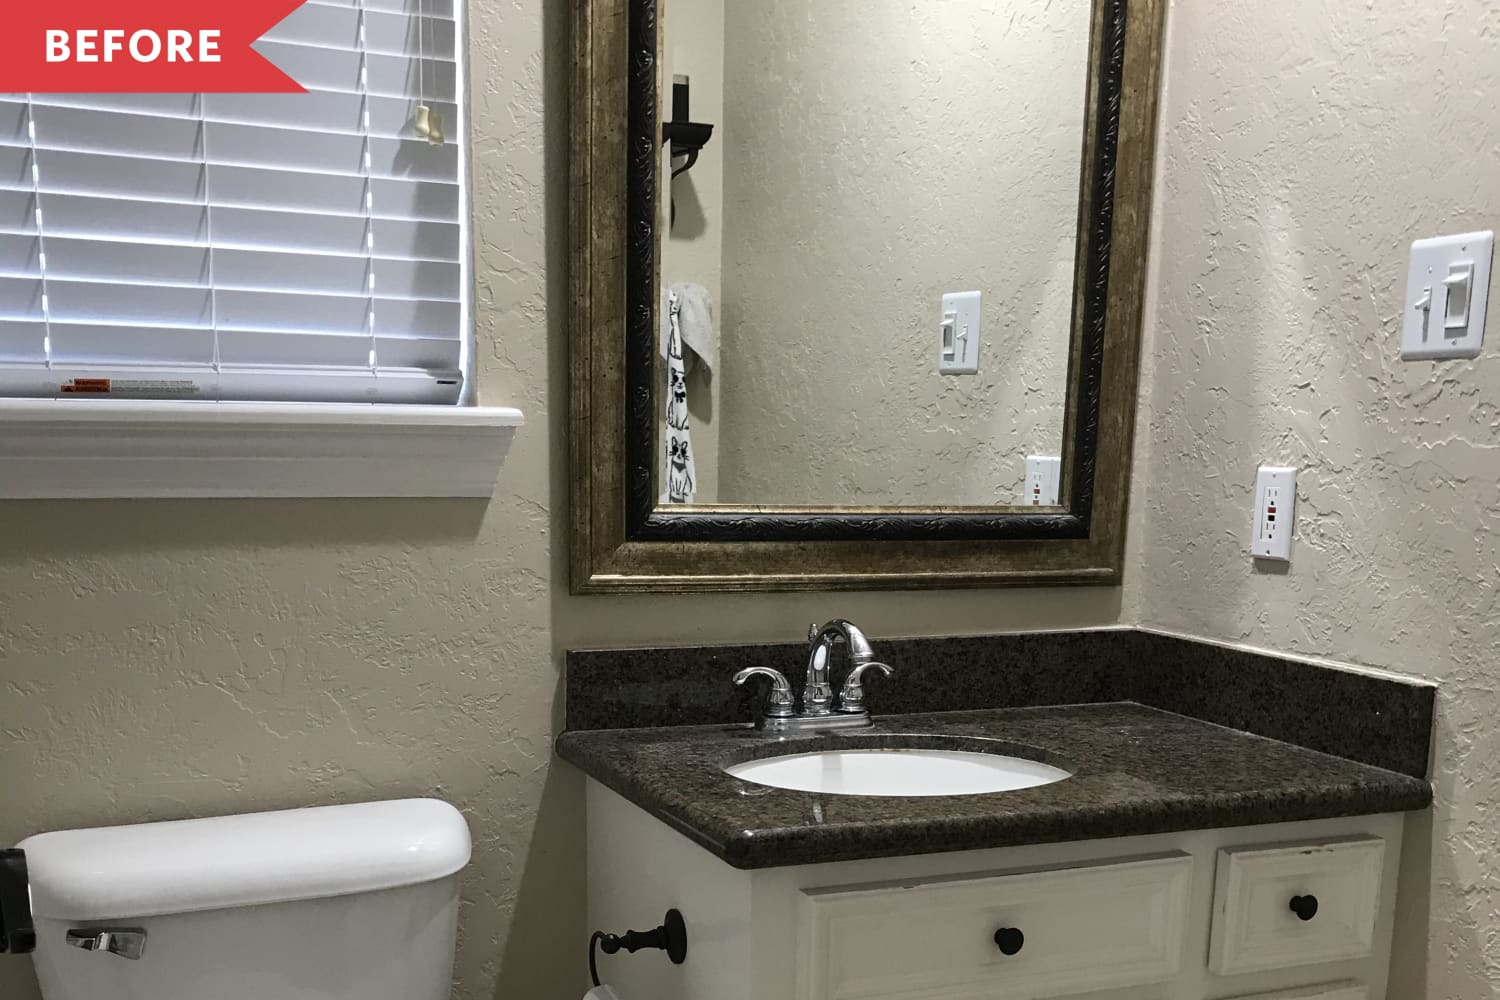 Before and After: A Few Small Changes Bring Lots More Life to This Tiny Bathroom